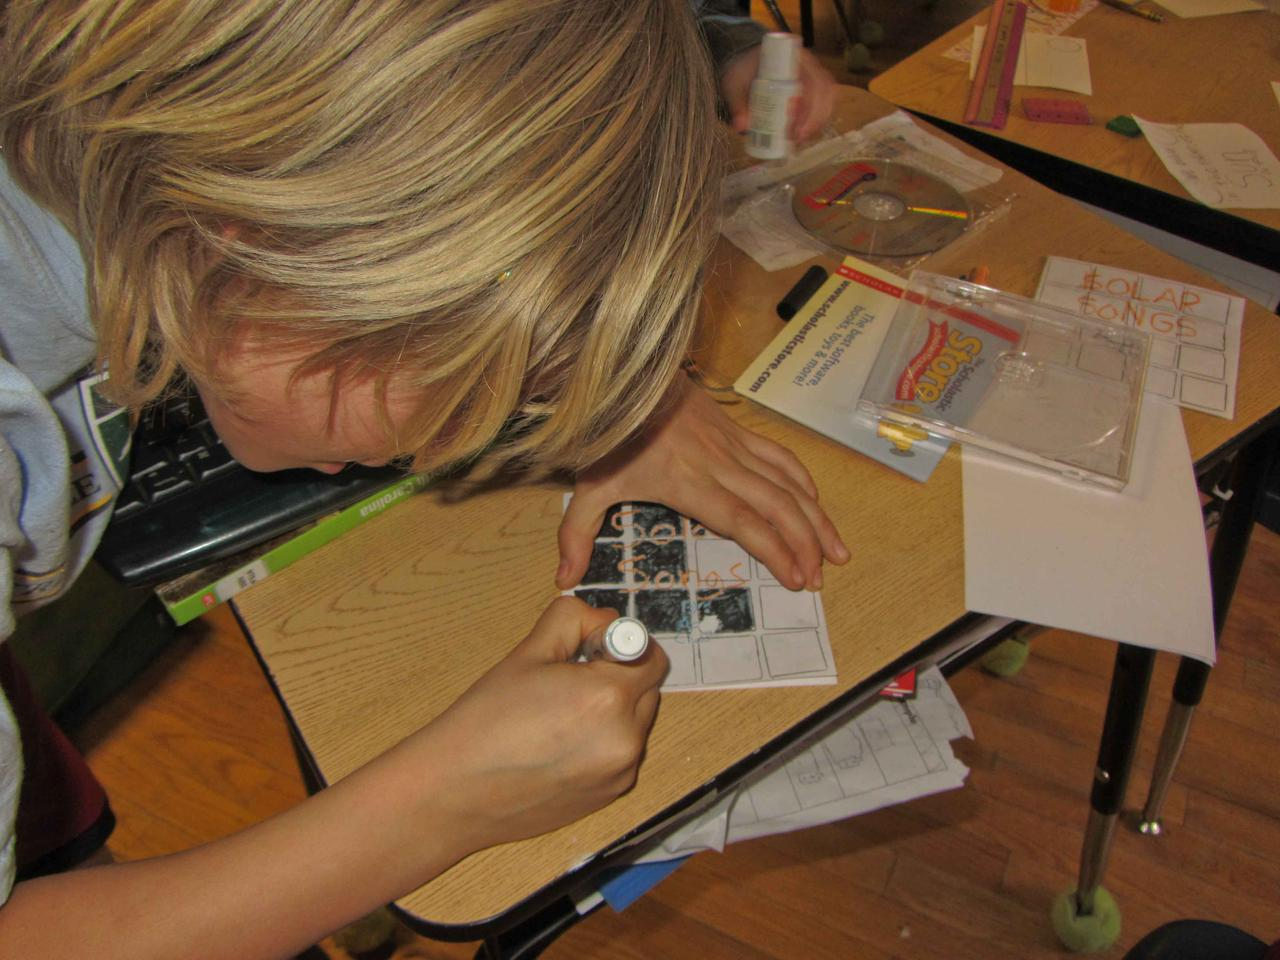 A student works on the Kickstarter project